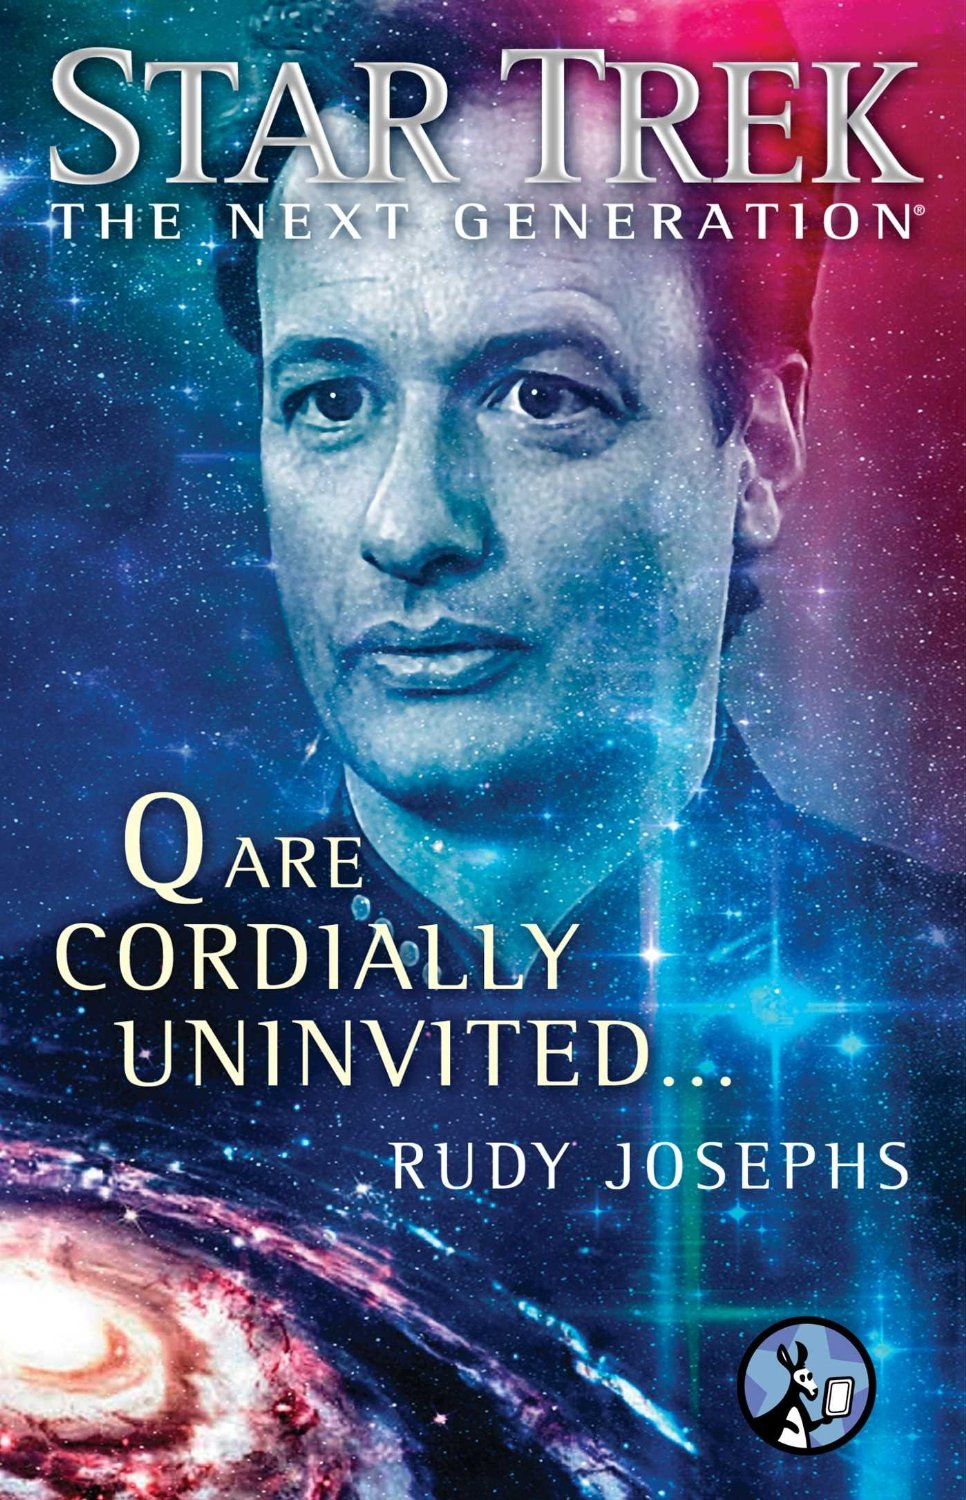 """""""Star Trek: The Next Generation: Q are Cordially Uninvited"""" Review by Unreality-sf.net"""